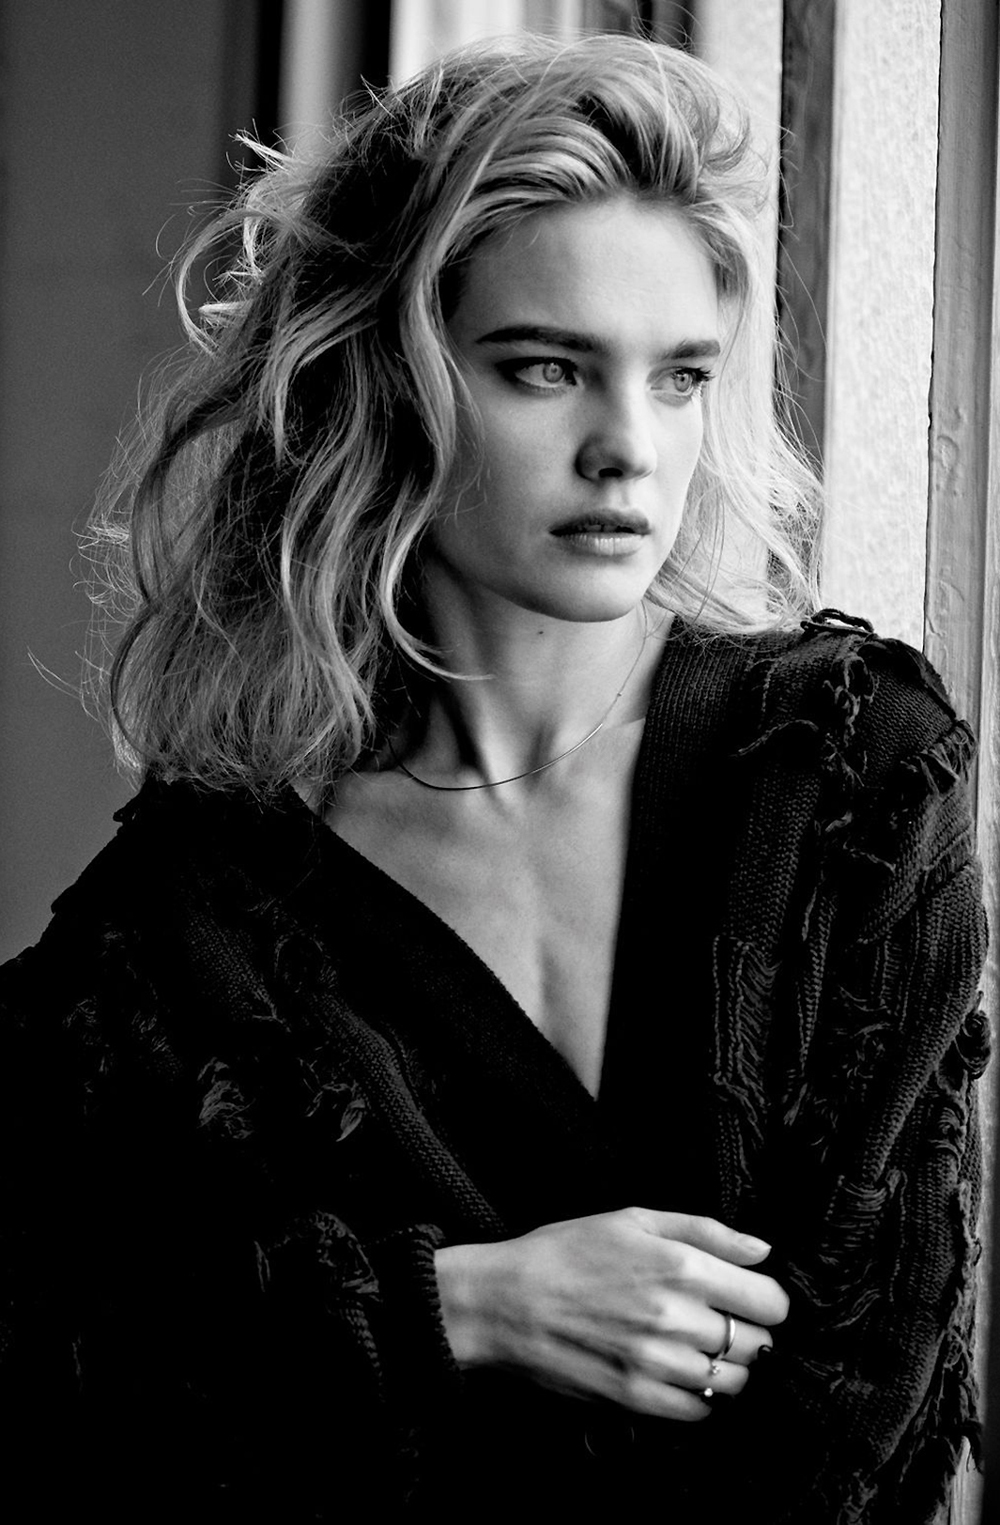 Natalia Vodianova photographed by Matthew Brookes for L'Express styles May 2015 via fashioned by love british fashion blog